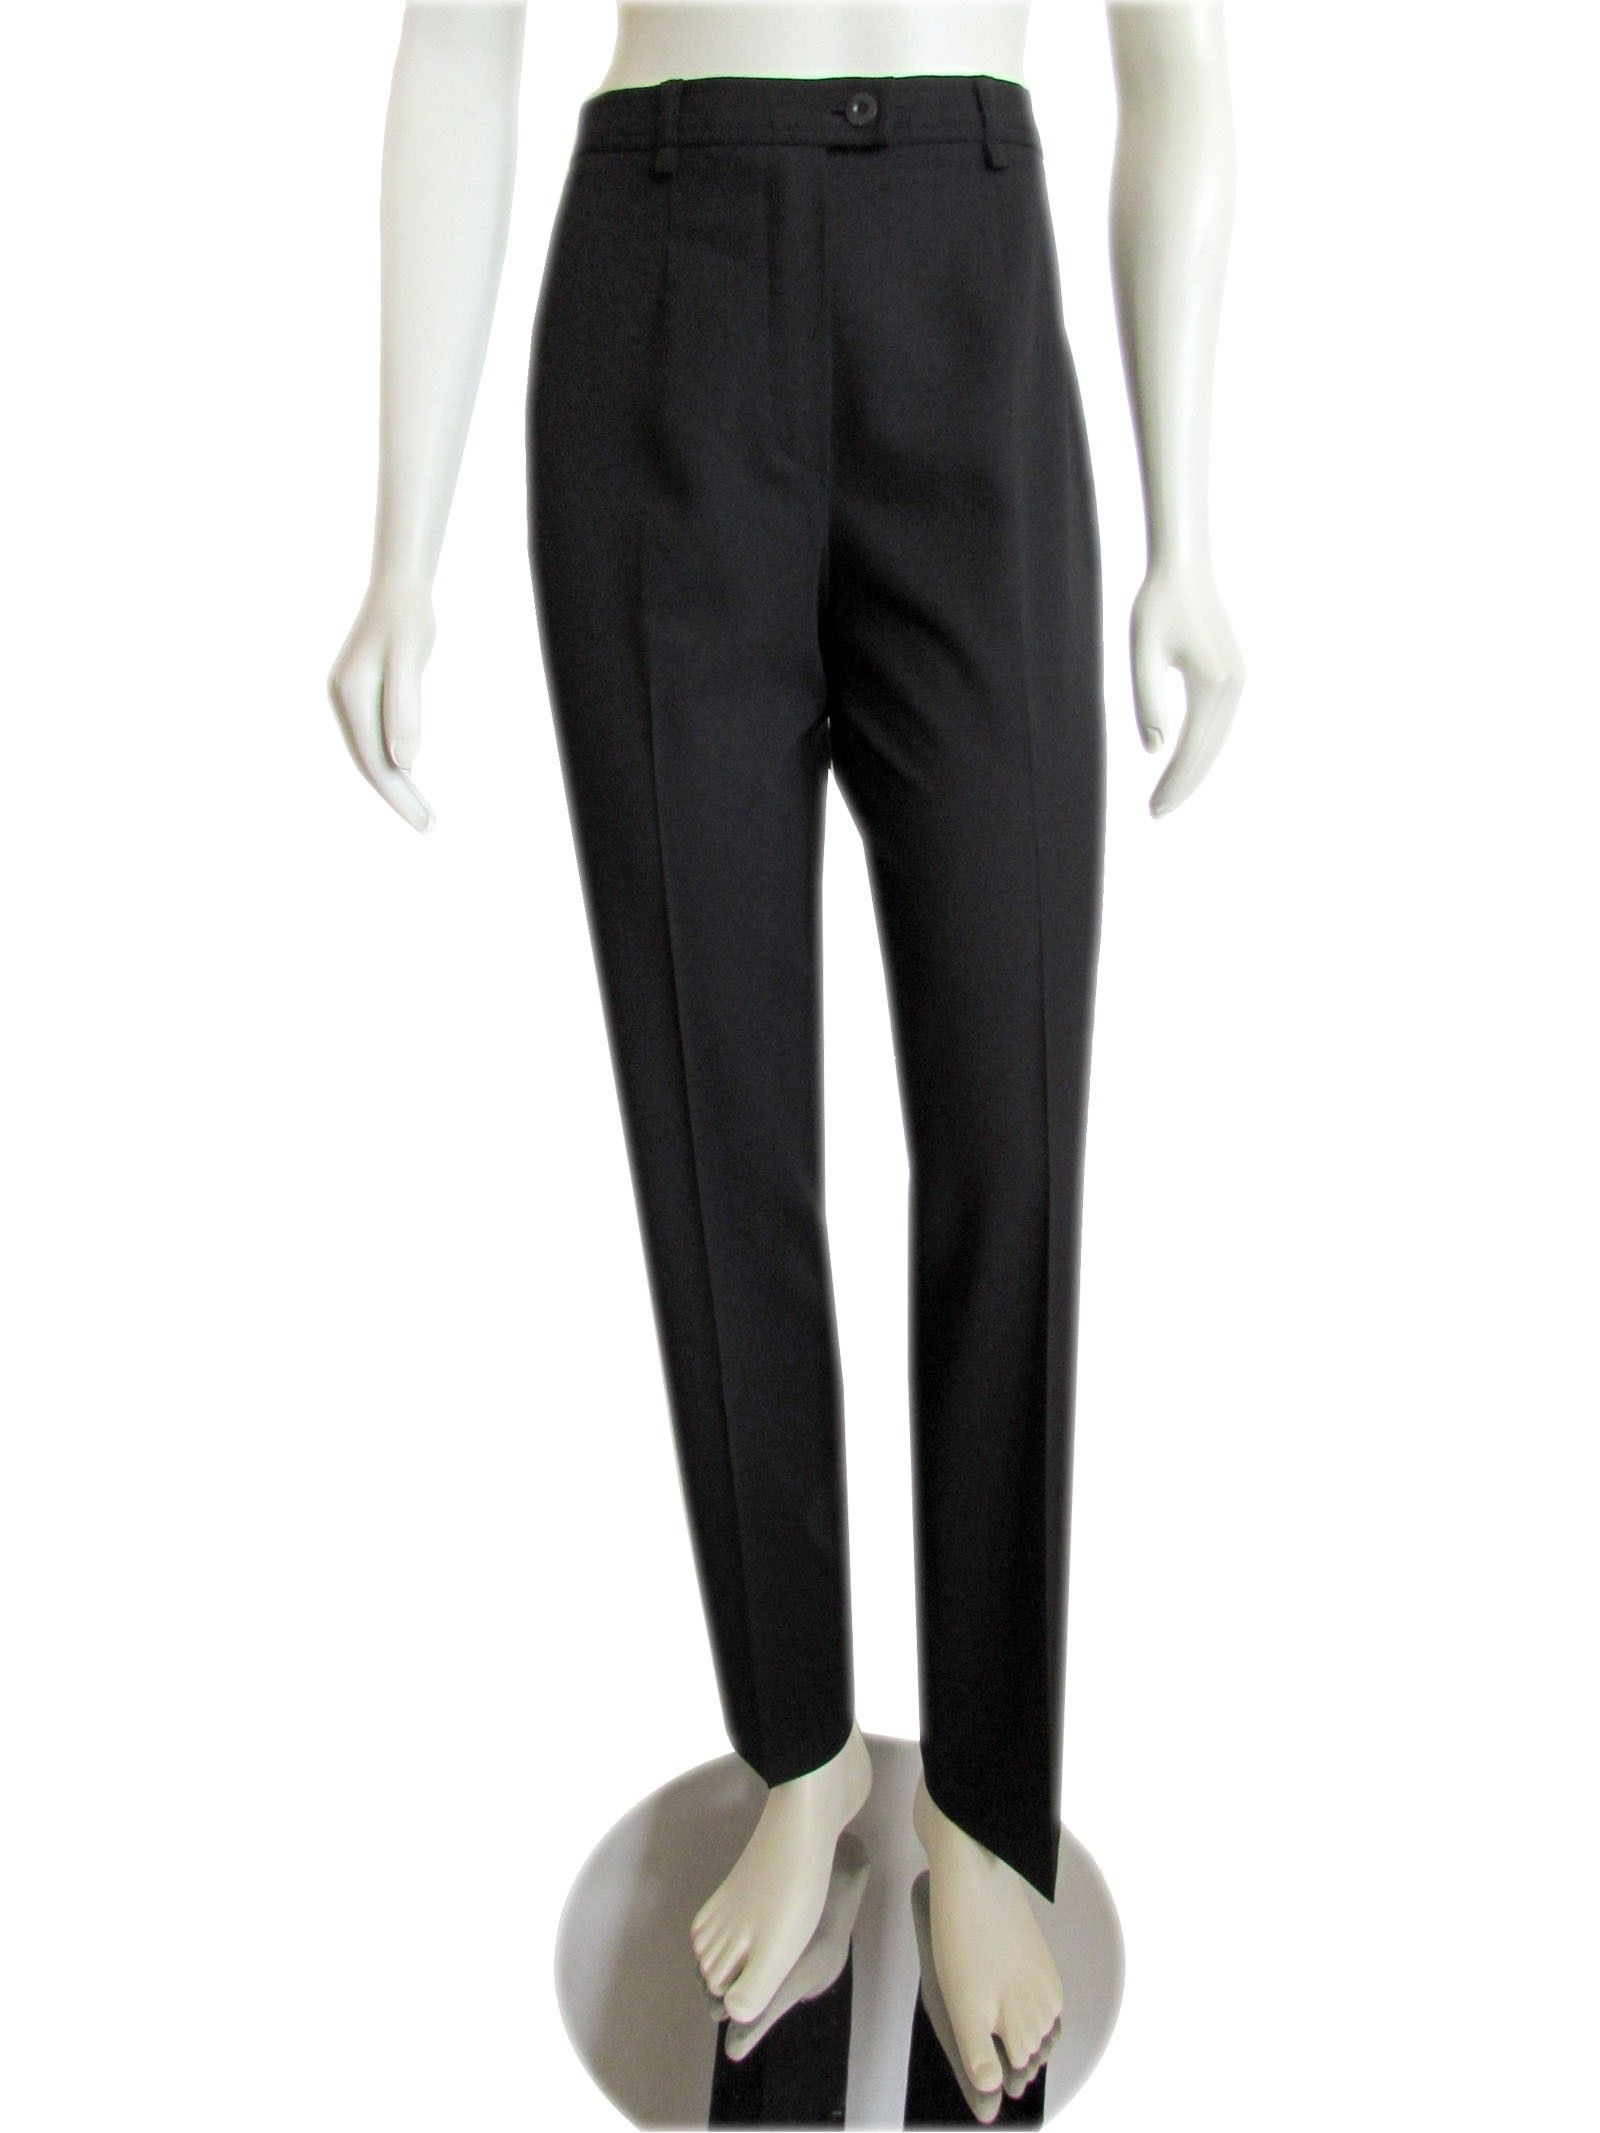 Escada Black Straight Leg Light Weight Wool Pants size 34 / 4 Great basic Escada black straight leg pants, made out of a light weight stretch wool blend material. Pants feature a natural rise with zip fly and extended tab button closure, slim fit through the hips... #Escada #EscadaClothing #EScadaPants #Black #Wool #Authentic #GentlyUsed #PreOwned #Used #designer #Consignment #Resale #ForSale #Sale #OnSale